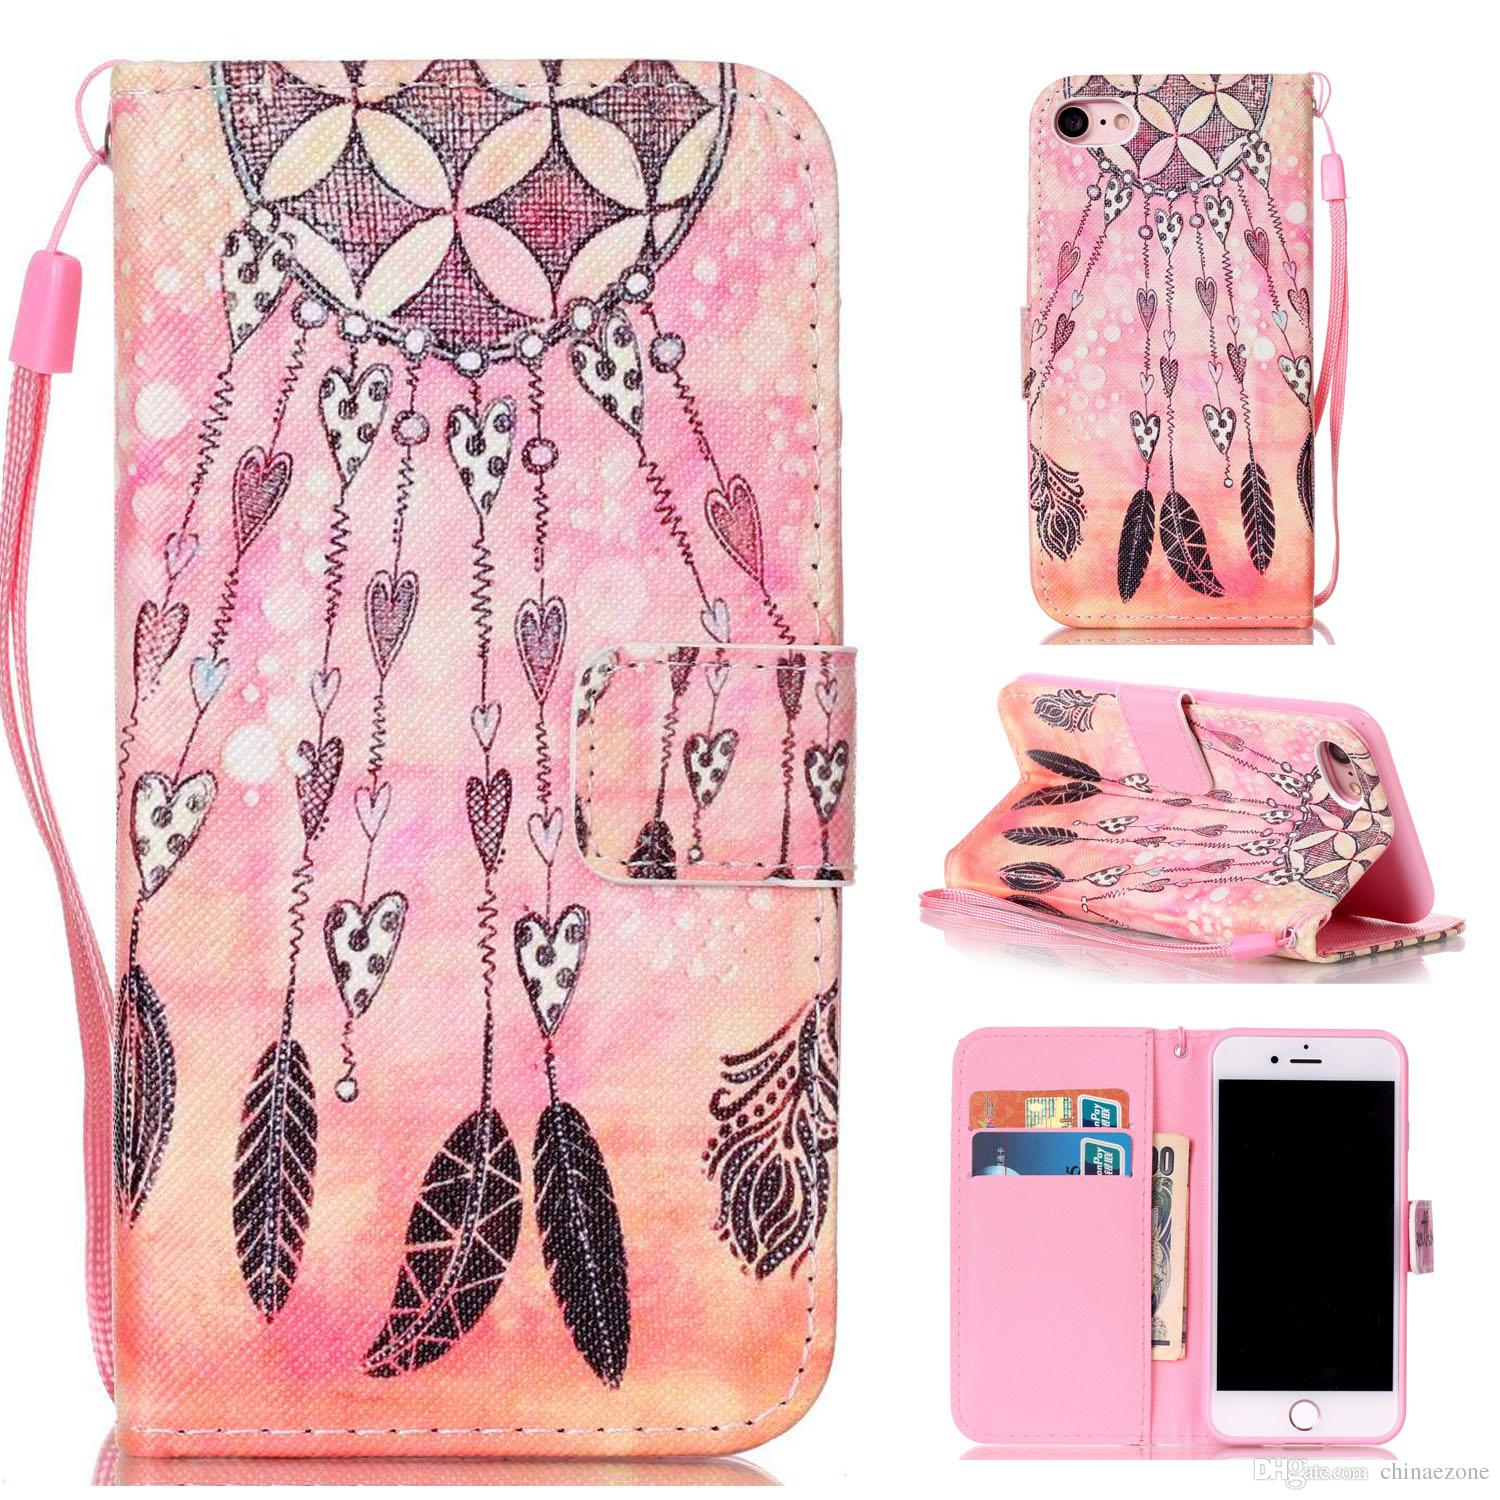 Feather Dream Catcher Design Pu Leather Flip Stand Wallet Card Slots Wrist Rope Pouch Cover Case Apple iPhone 7 iPhone7 4.7 Inch